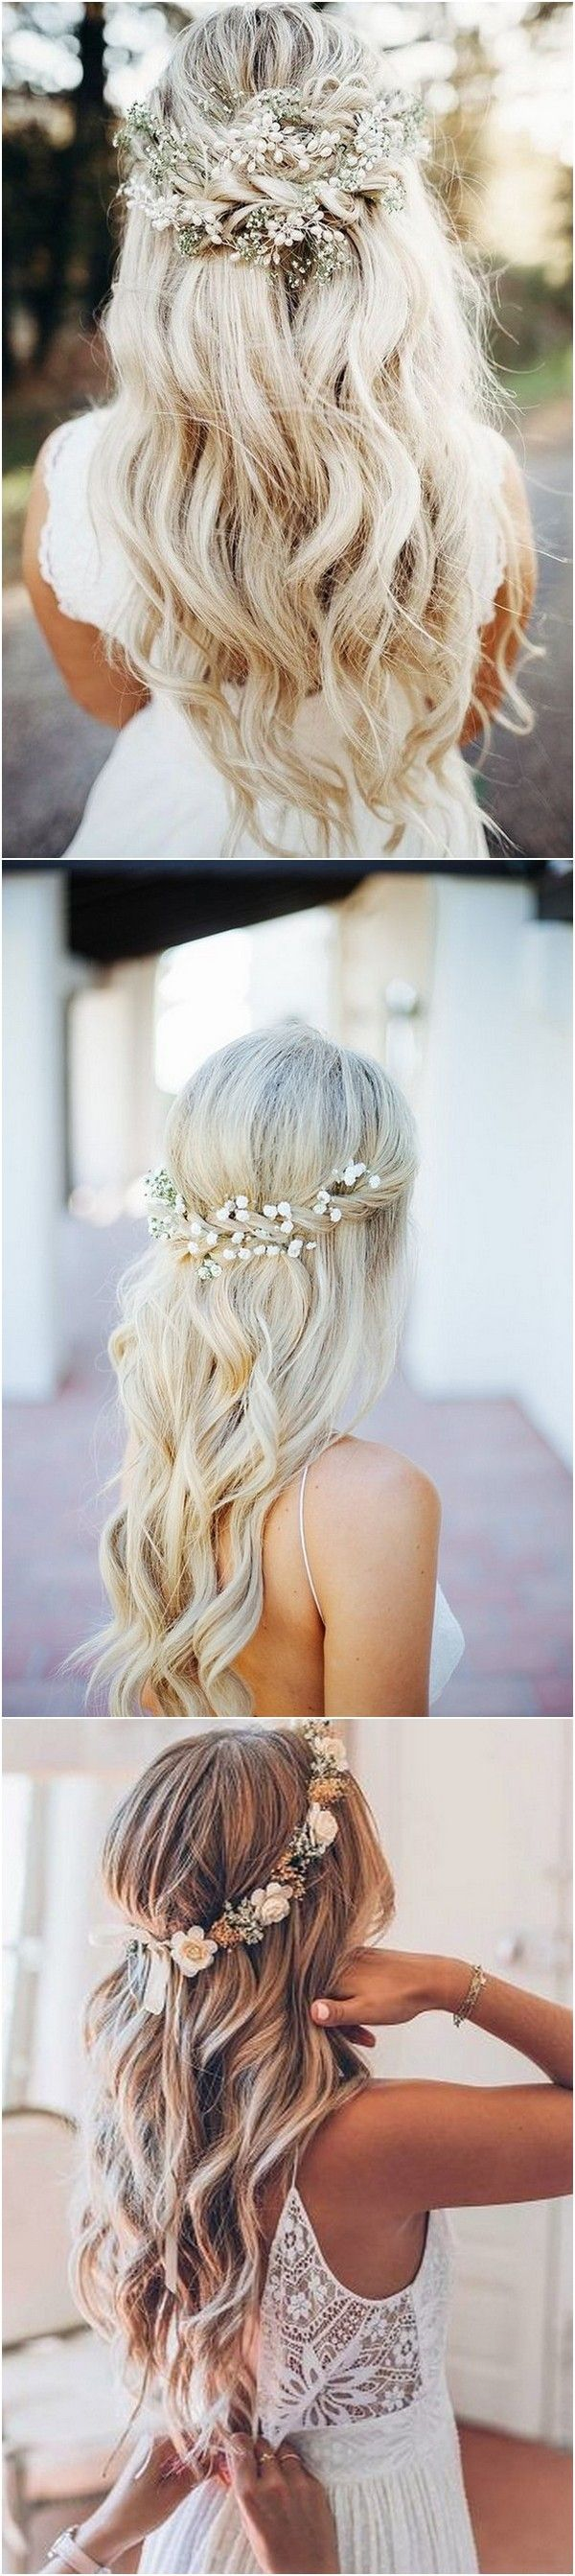 20 Gorgeous Wedding Hairstyles with Flowers for Fall